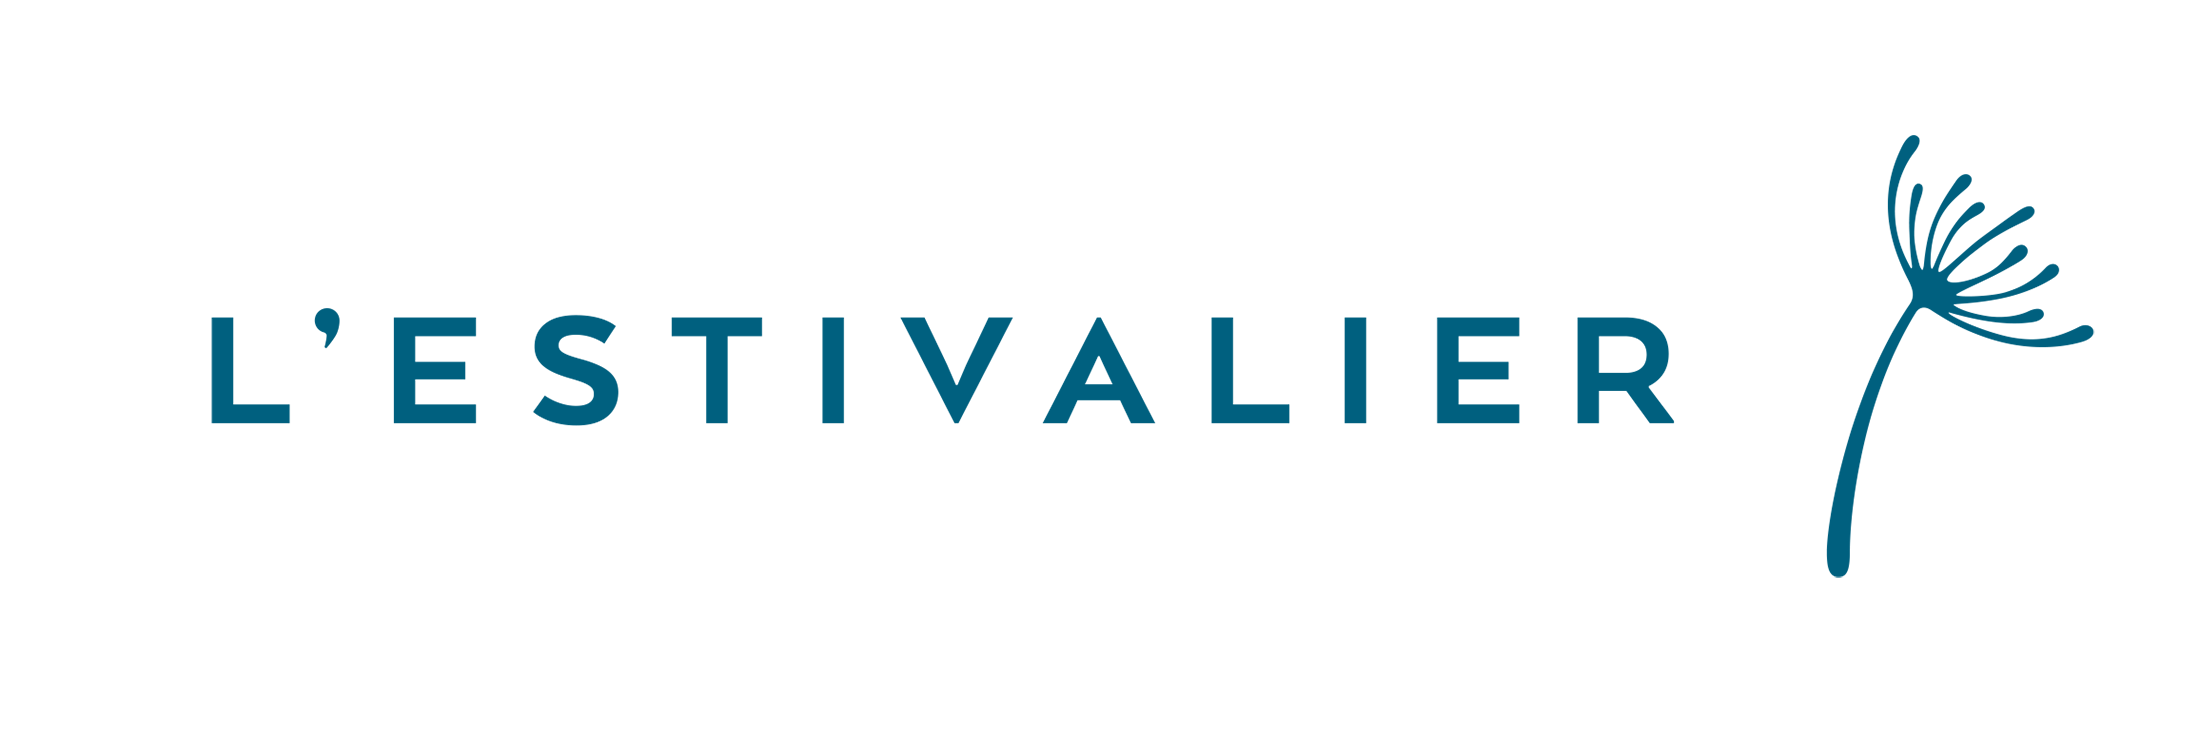 L'estivalier